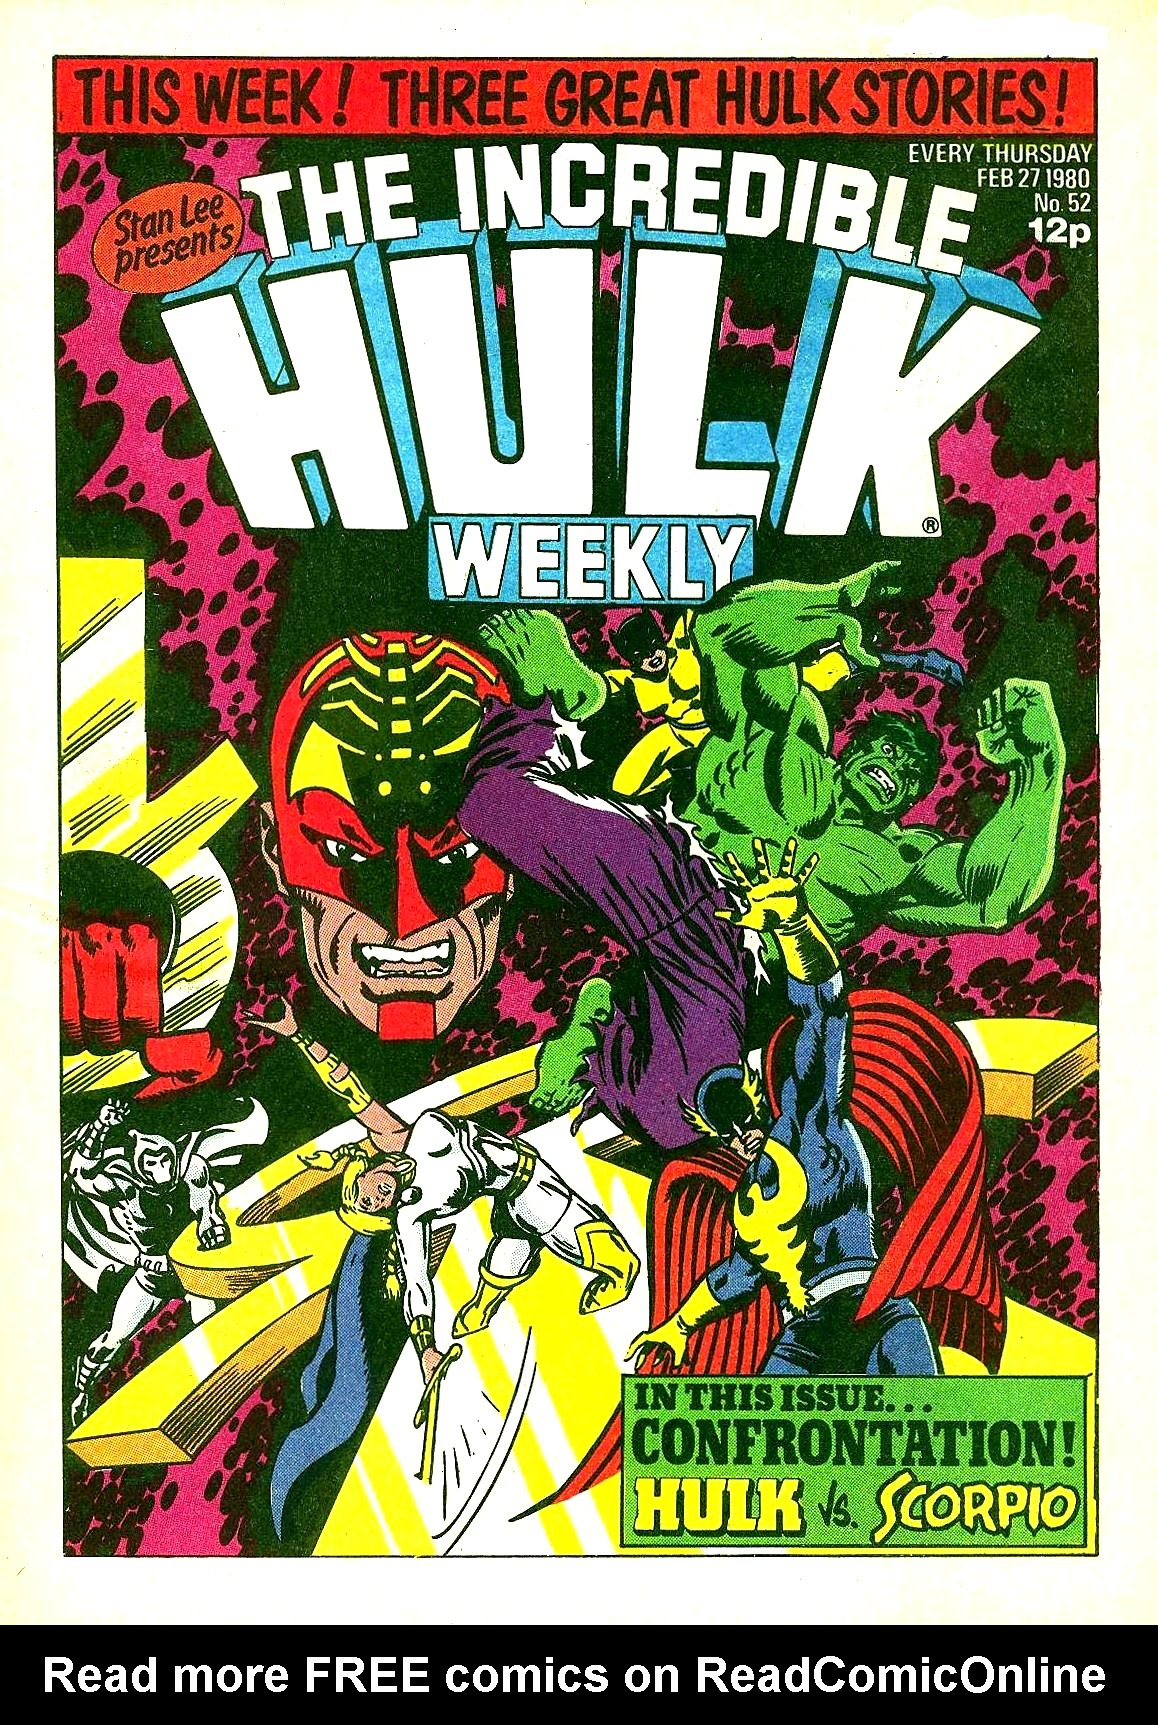 The Incredible Hulk Weekly 52 Page 1